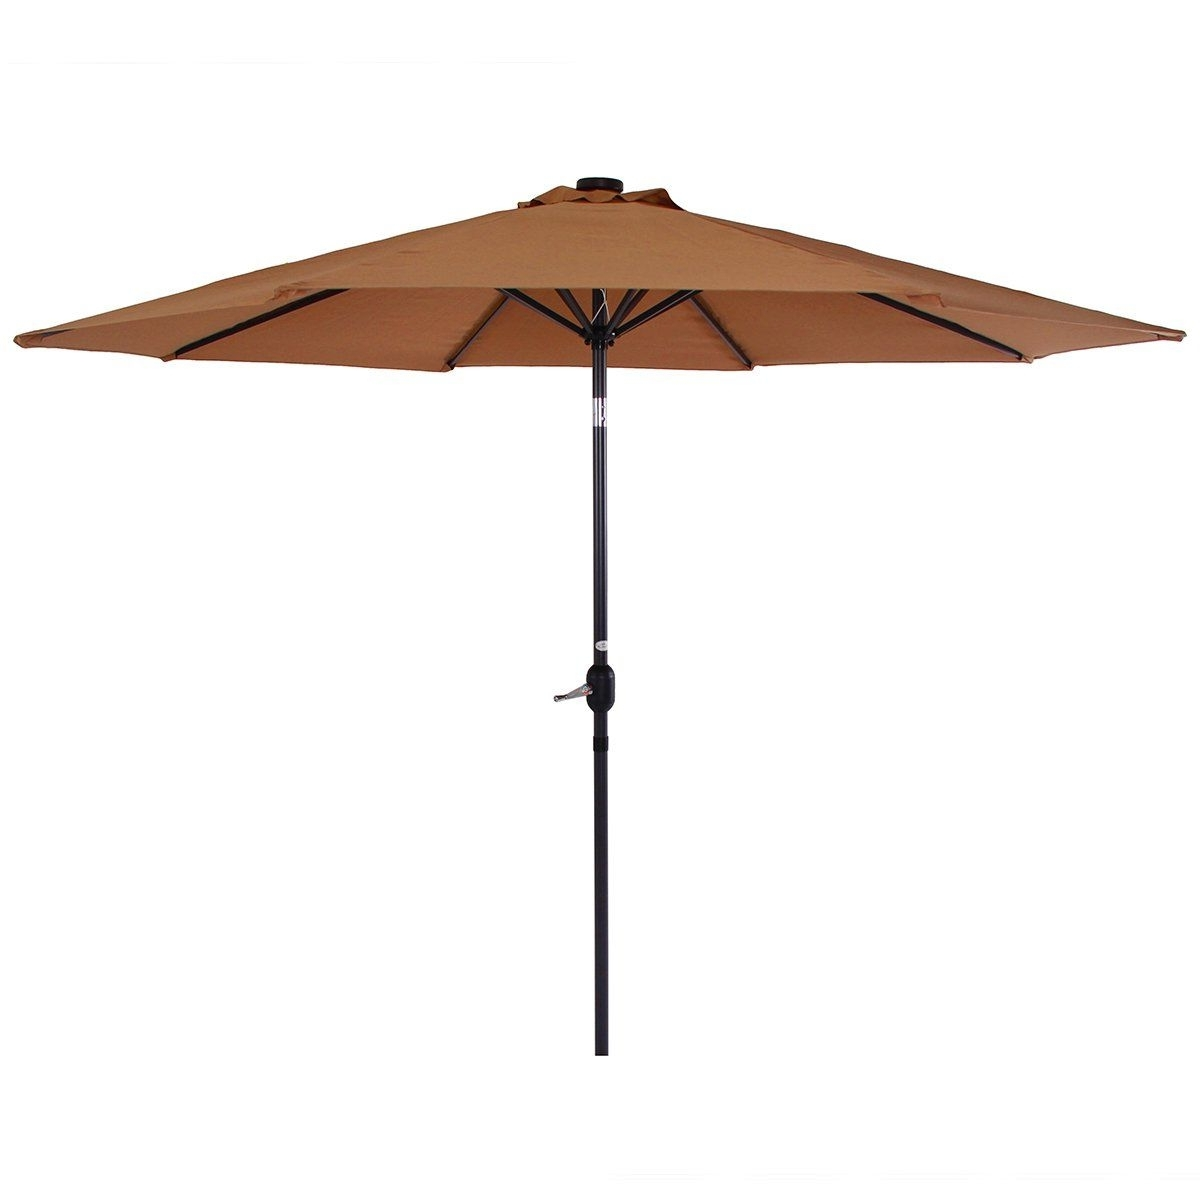 9 Ft Patio Umbrellas In Well Known Phi Villa 9 Ft Patio Umbrella Premium Deluxe Outdoor Umbrella With (View 4 of 20)